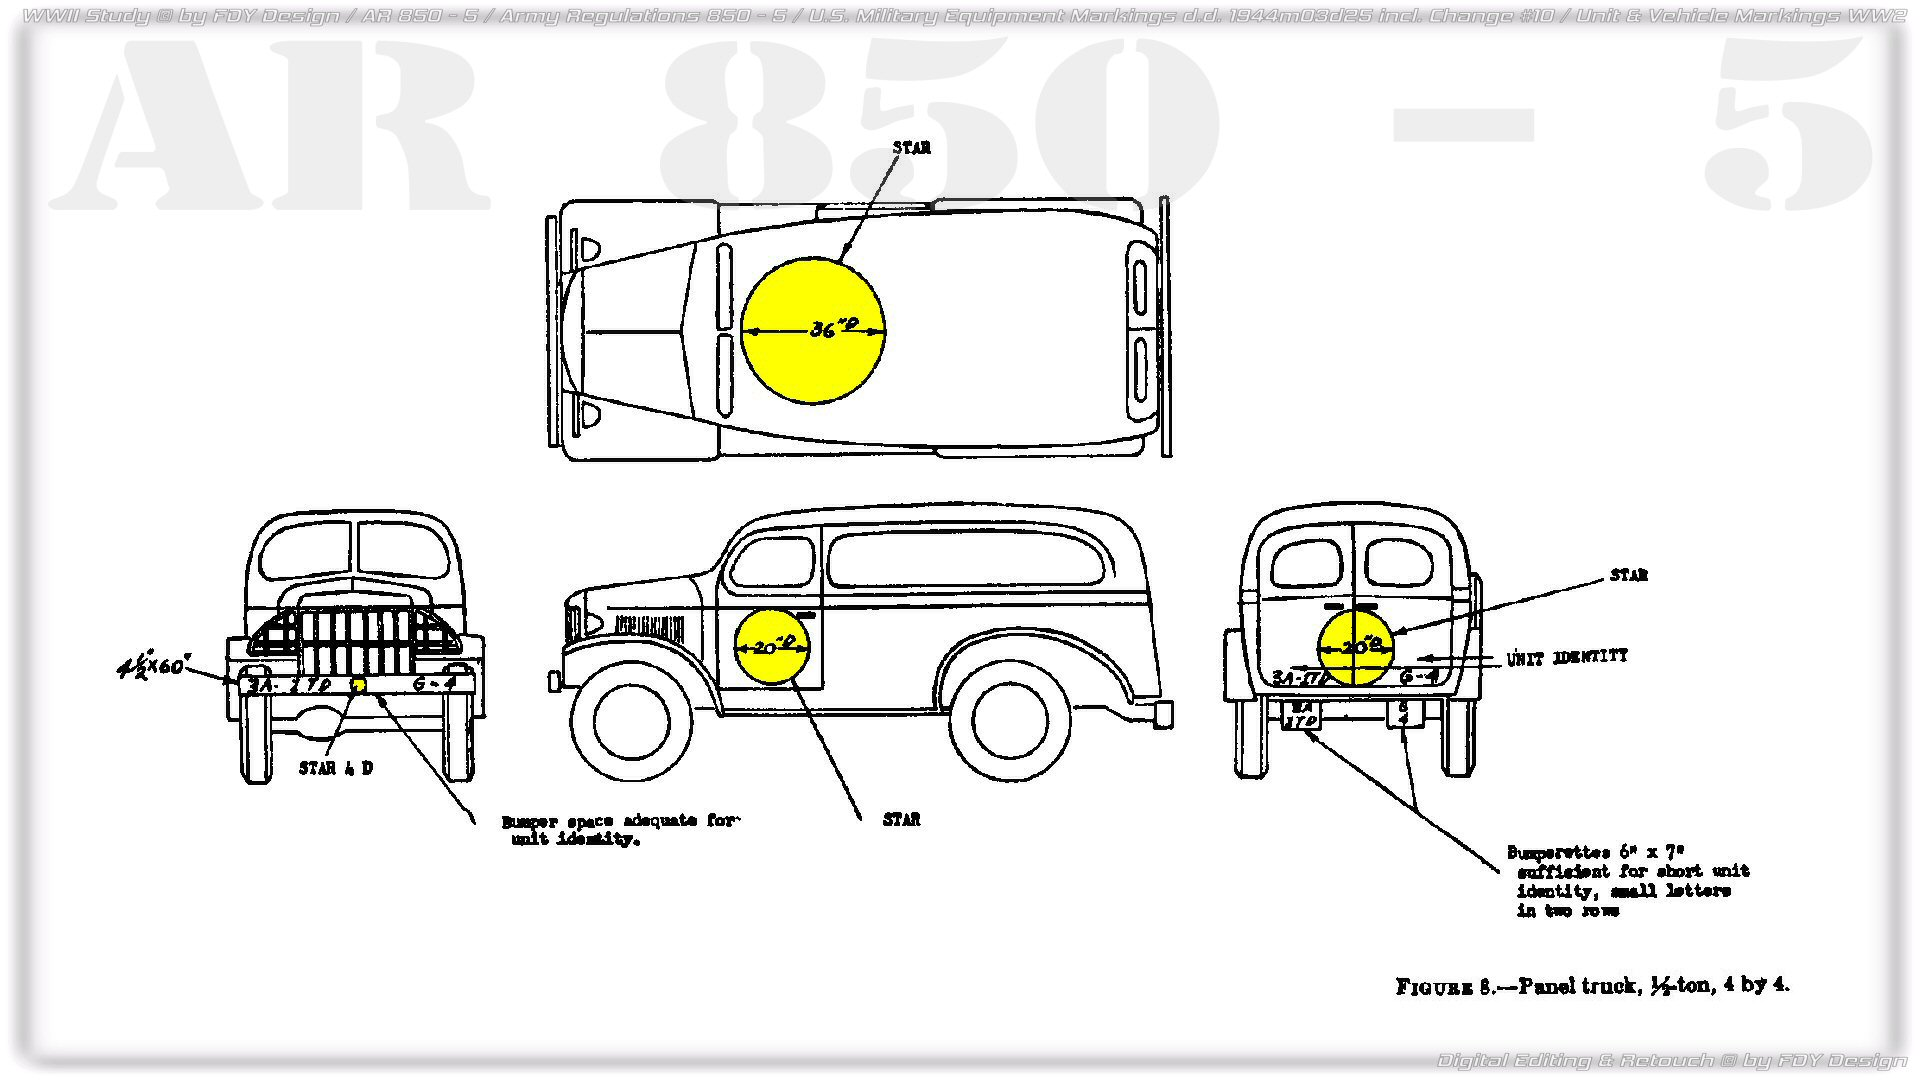 1957 Chevy Truck Turn Signal Wiring Diagram. Chevy. Wiring